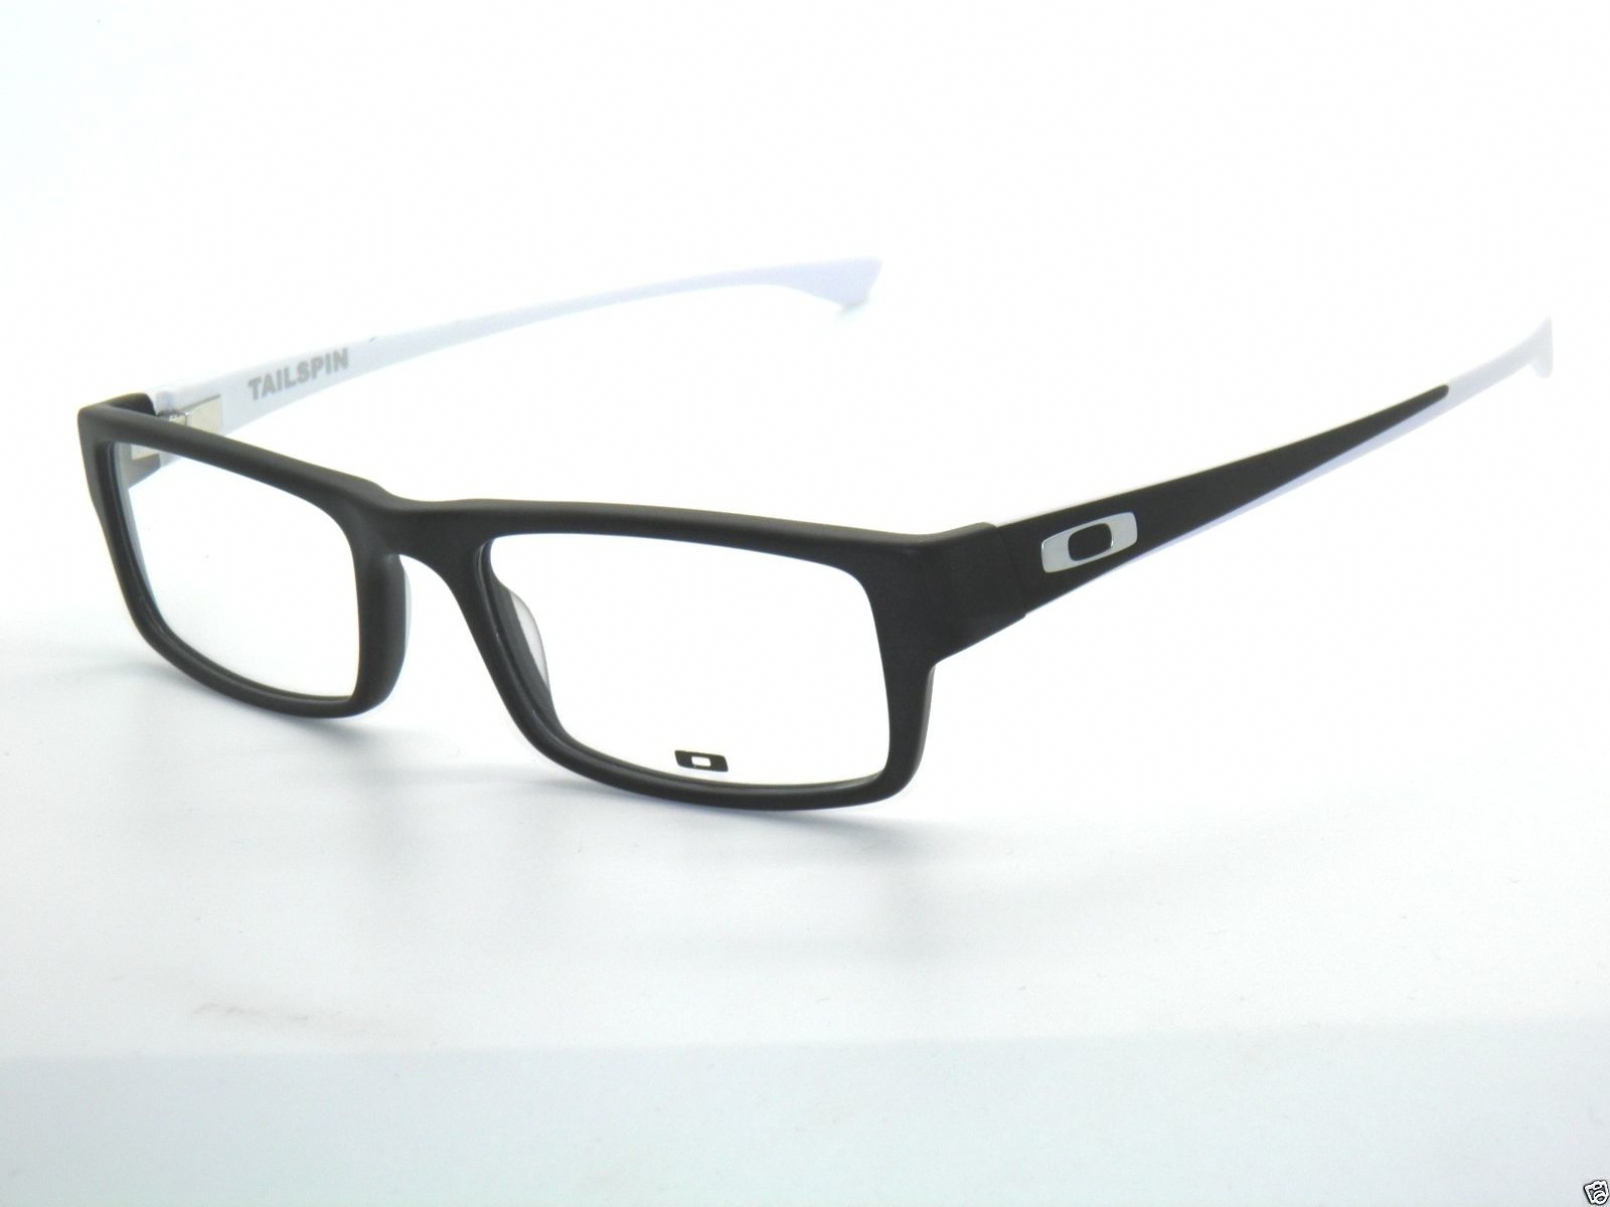 6a1ef30b8d Oakley Tailspin Glasses Review « Heritage Malta